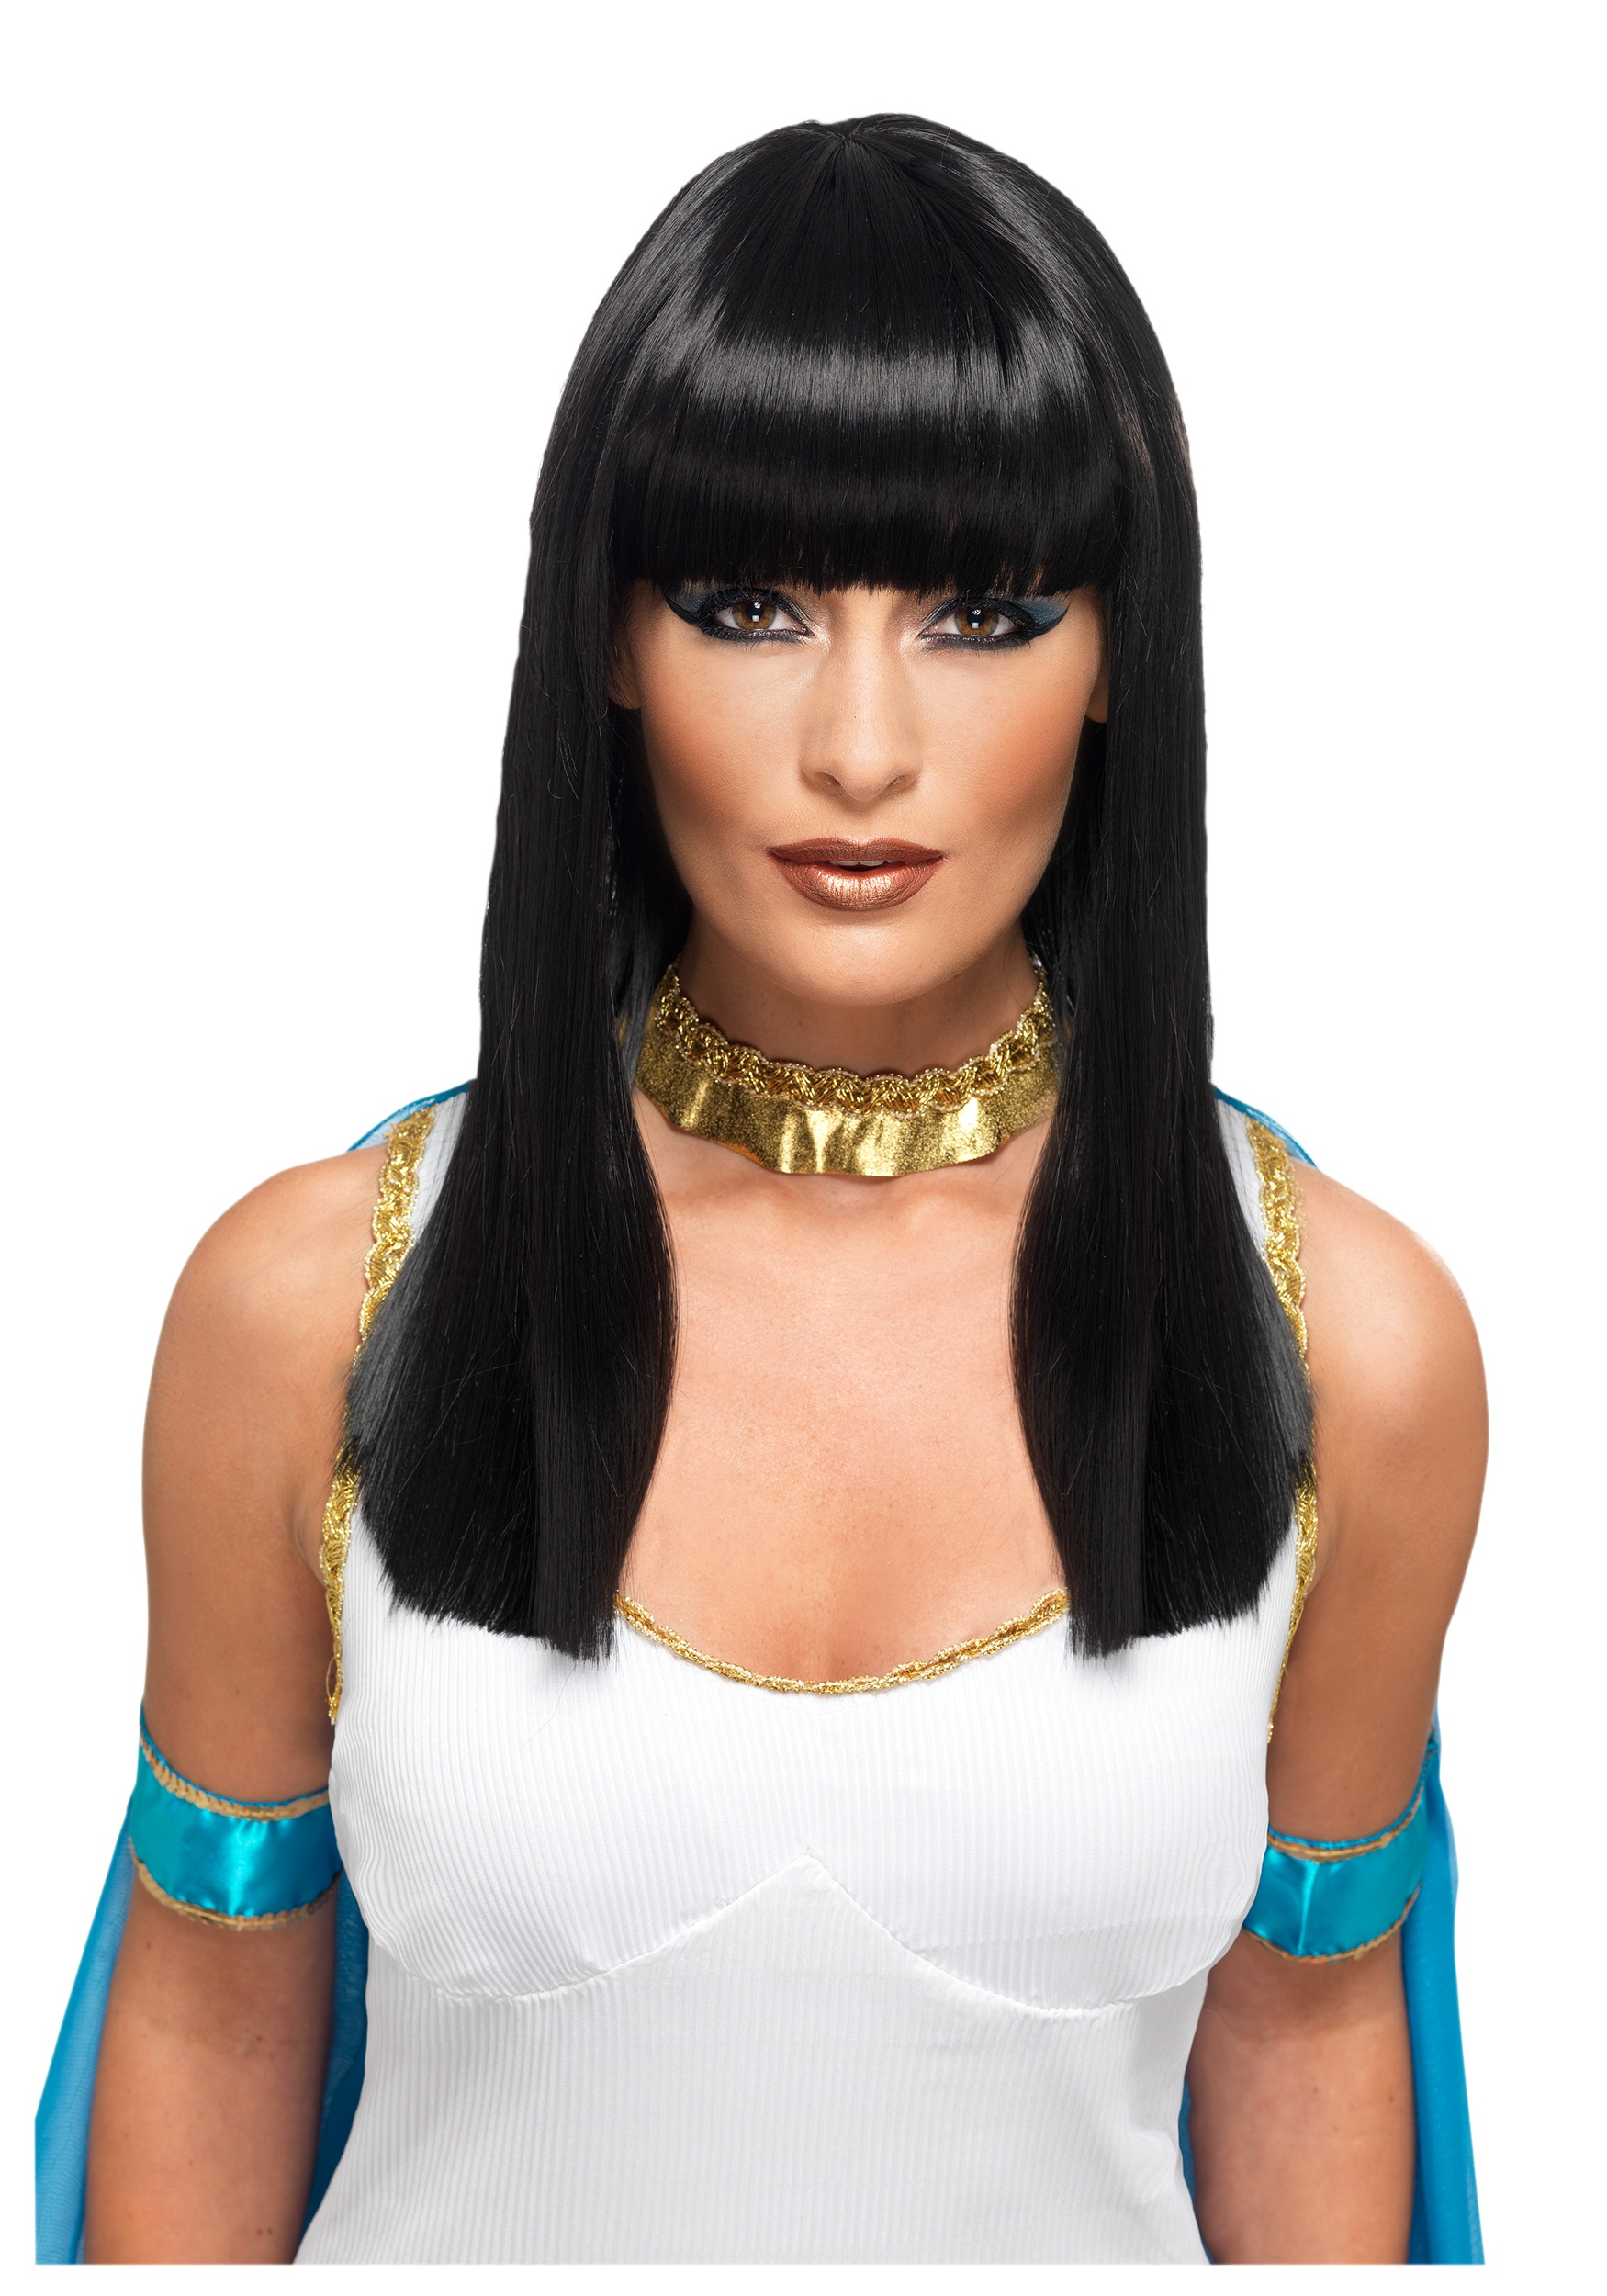 Adult Costume Wigs 7